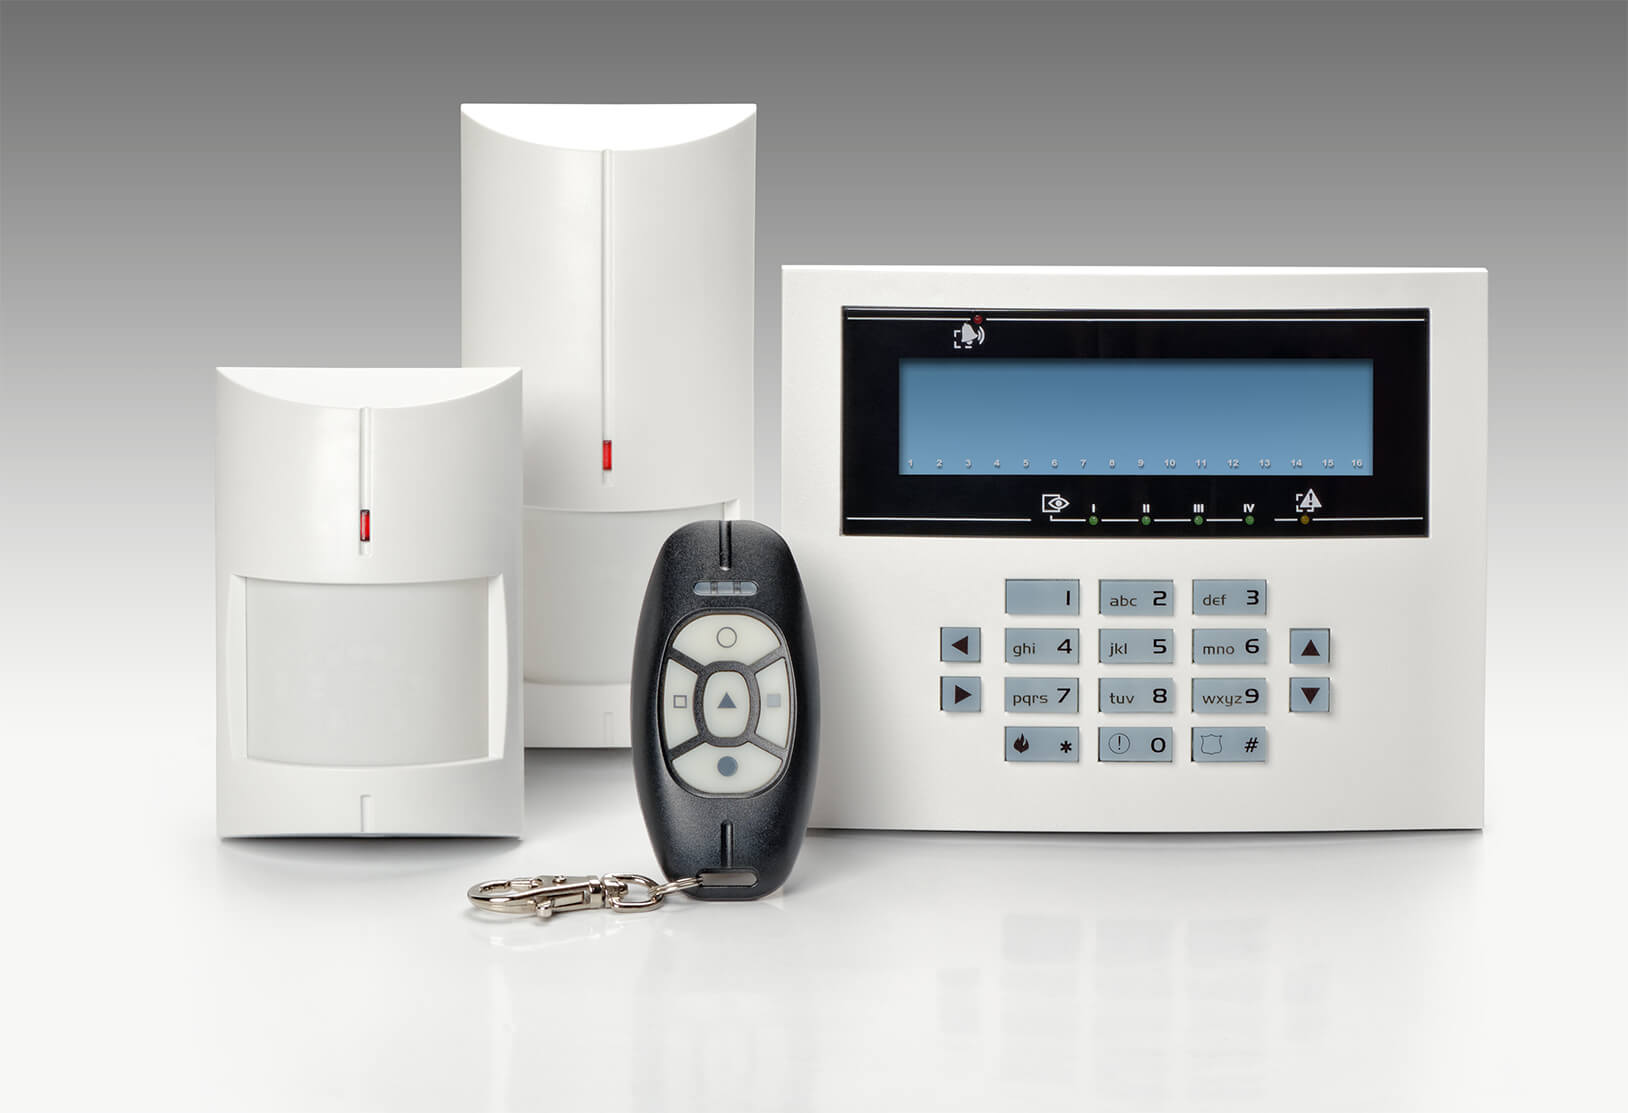 residential NACOSS Approved {alarms} In Lambeth SW16 - Local Lambeth SW16 security company.Call 02078872244 - Dedicated to Safety & Security.Trusted by 1000's in Lambeth SW16